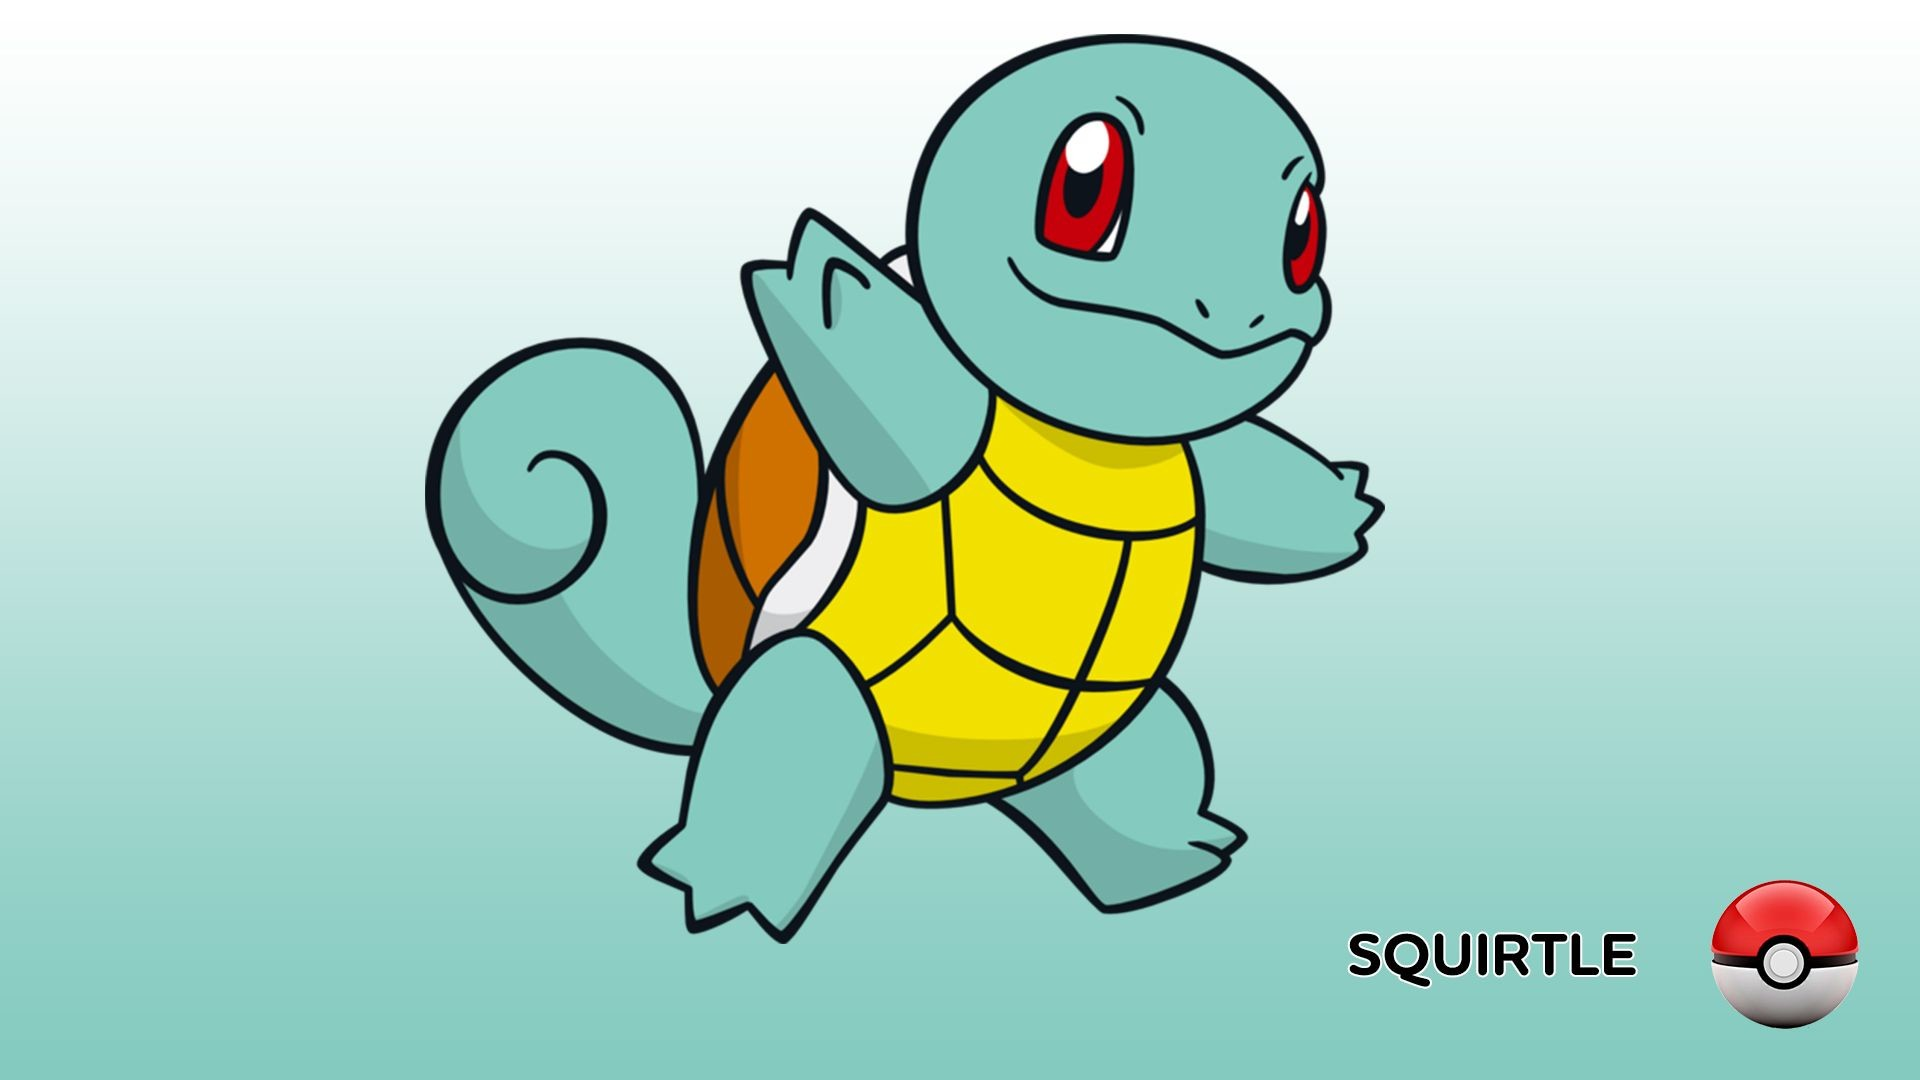 Res: 1920x1080, Squirtle wallpaper HD 2016 in Pokemon Go | Wallpapers HD